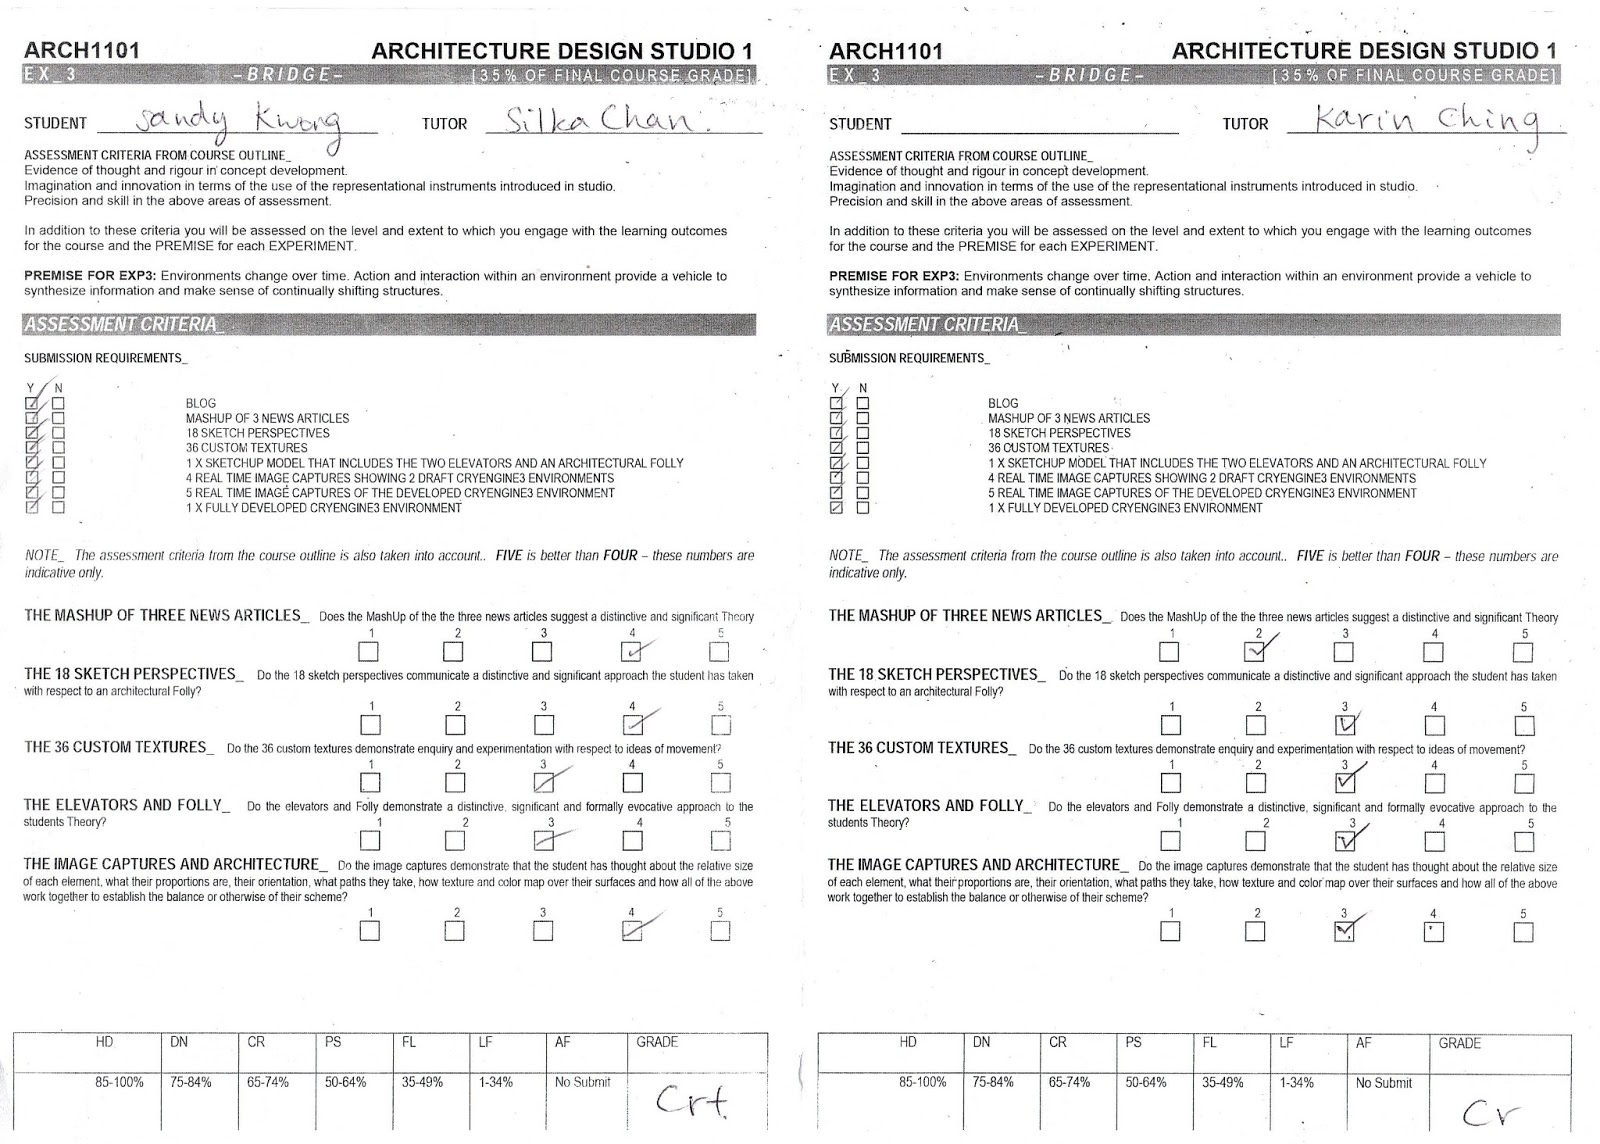 term paper evaluation sheet The process will document specific performance and behavior improvements that are expected  the performance evaluation review form more frequent formal evaluations may be necessary if there are  continuing performance problems review of limited term employees is encouraged but forms need not be submitted to human resources.